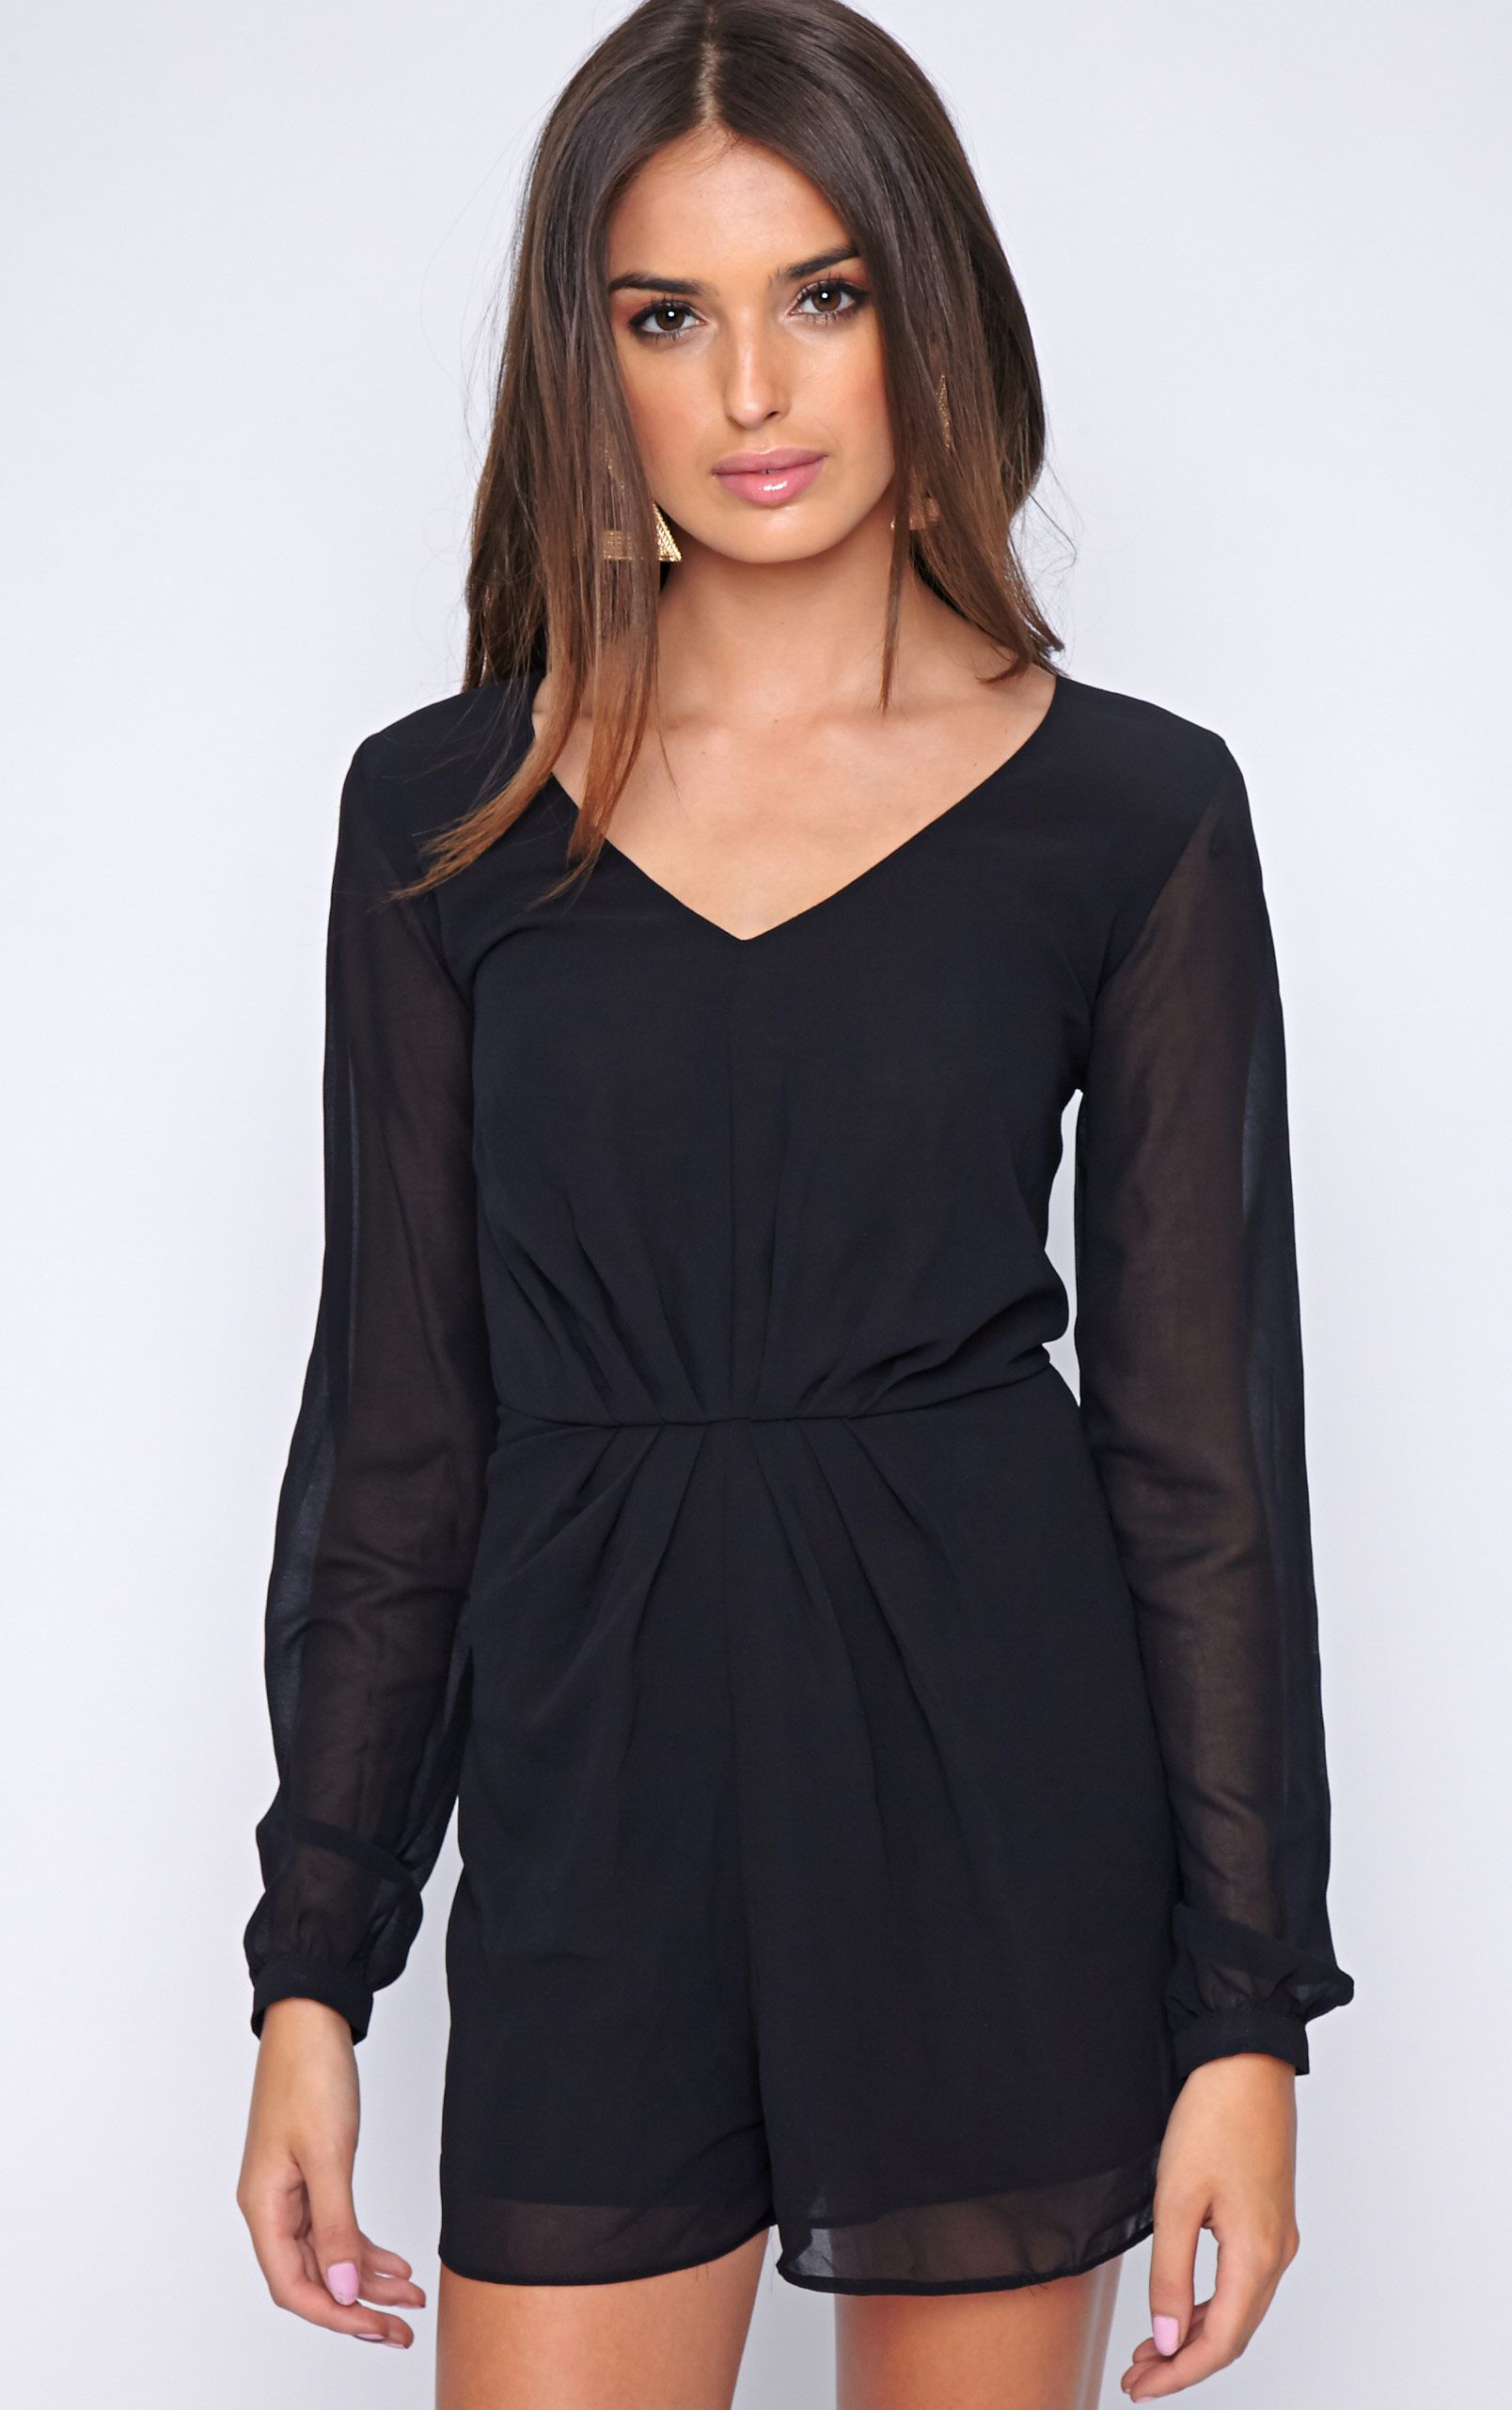 Alexandra Black Chiffon Playsuit 1